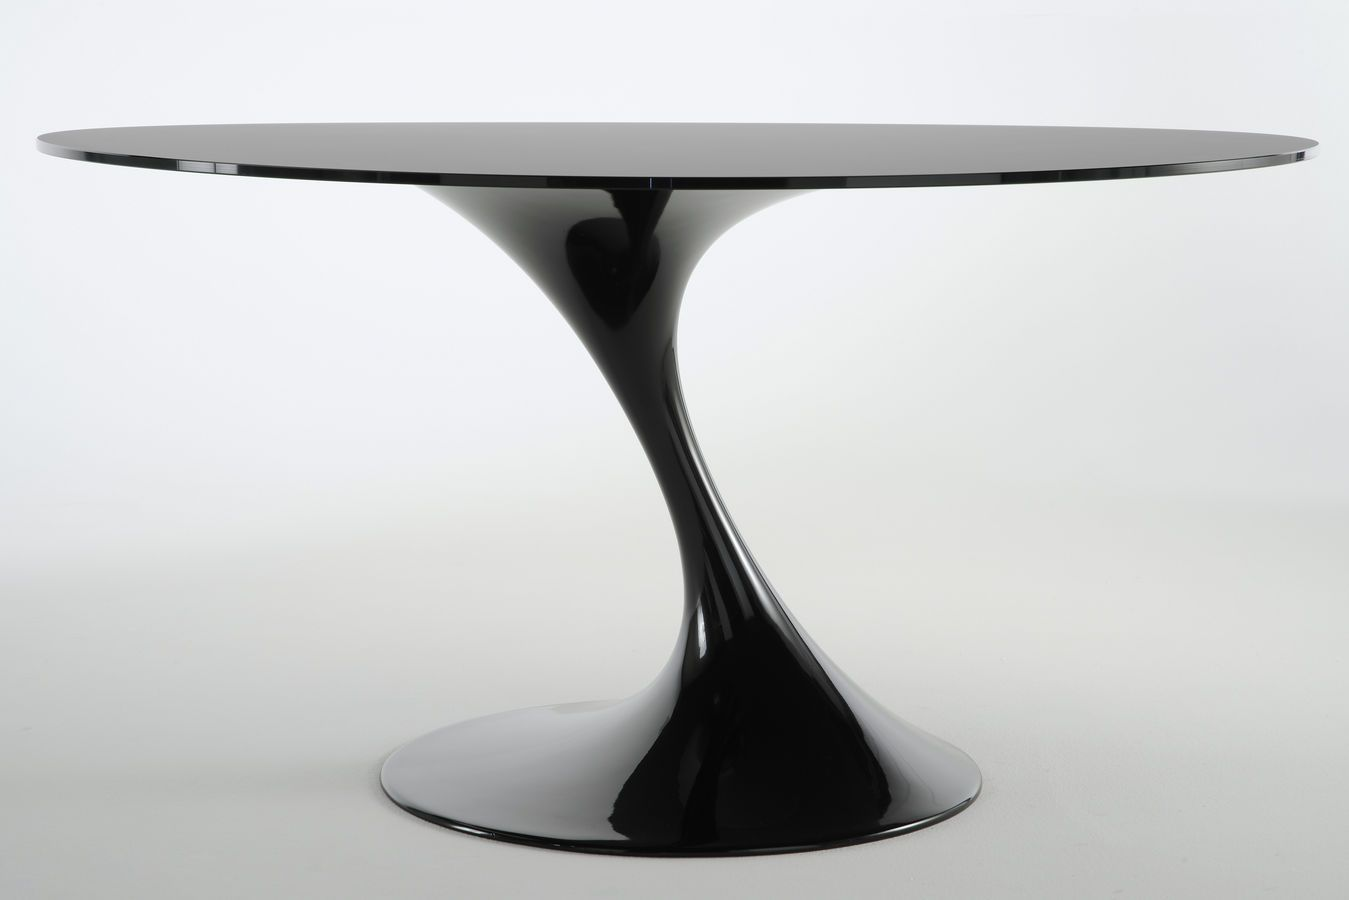 Design Tables amazing of coffee table design coffee table design at hongdahs new home design Organic Design Table Atatlas Black By Marcello Ziliani Casprini Gruppo Industriale